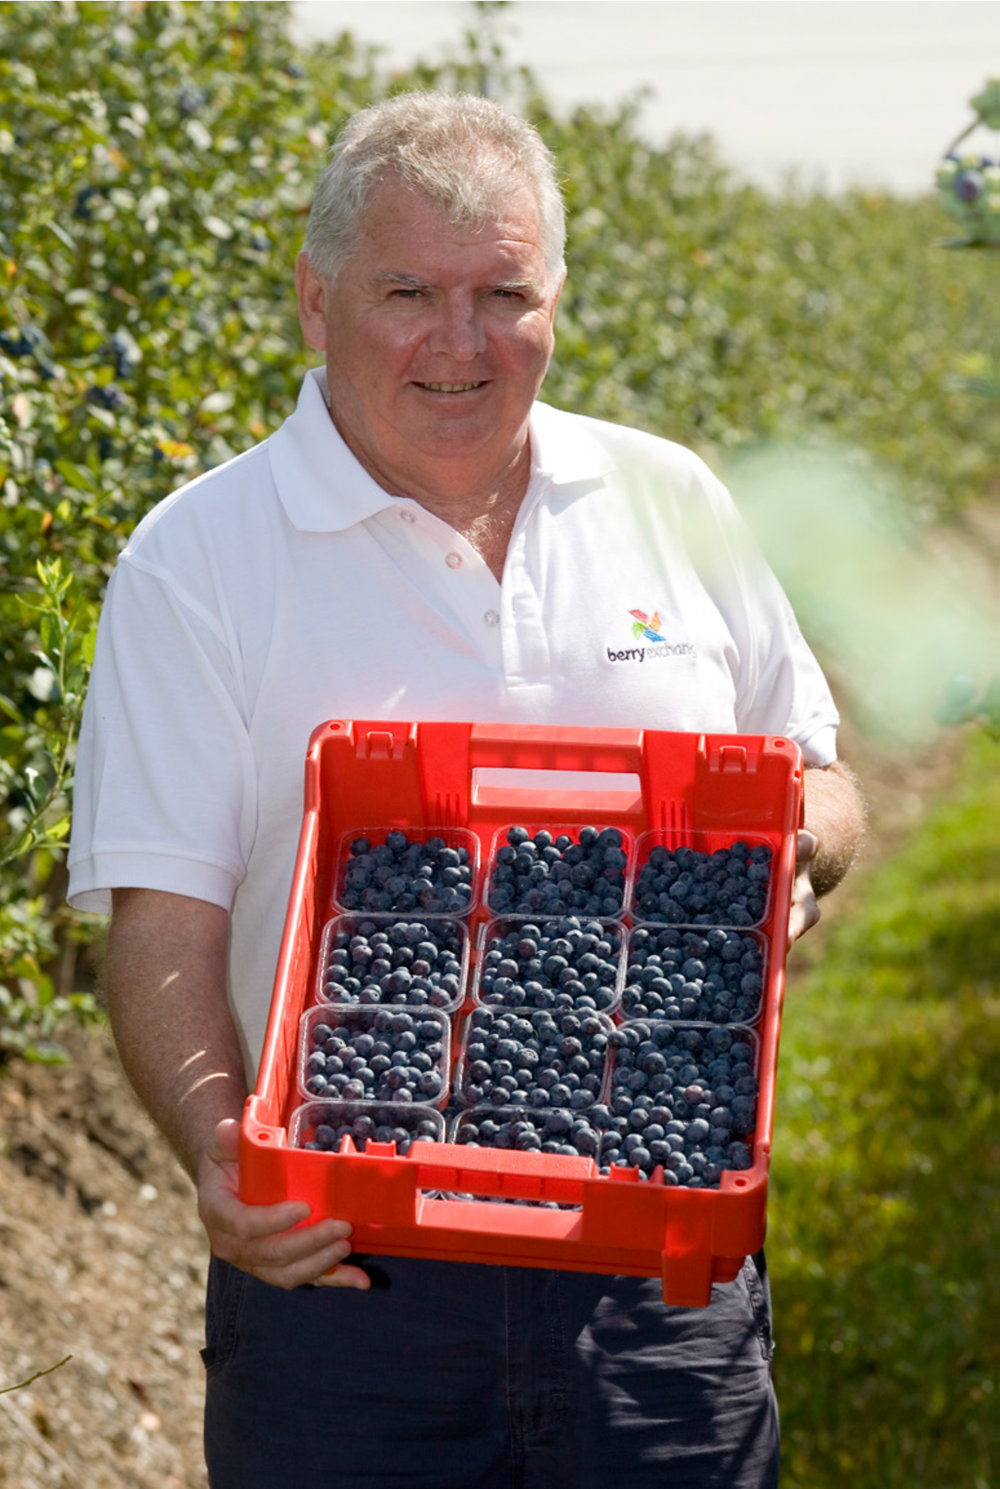 Peter with Tray of Berries.jpg